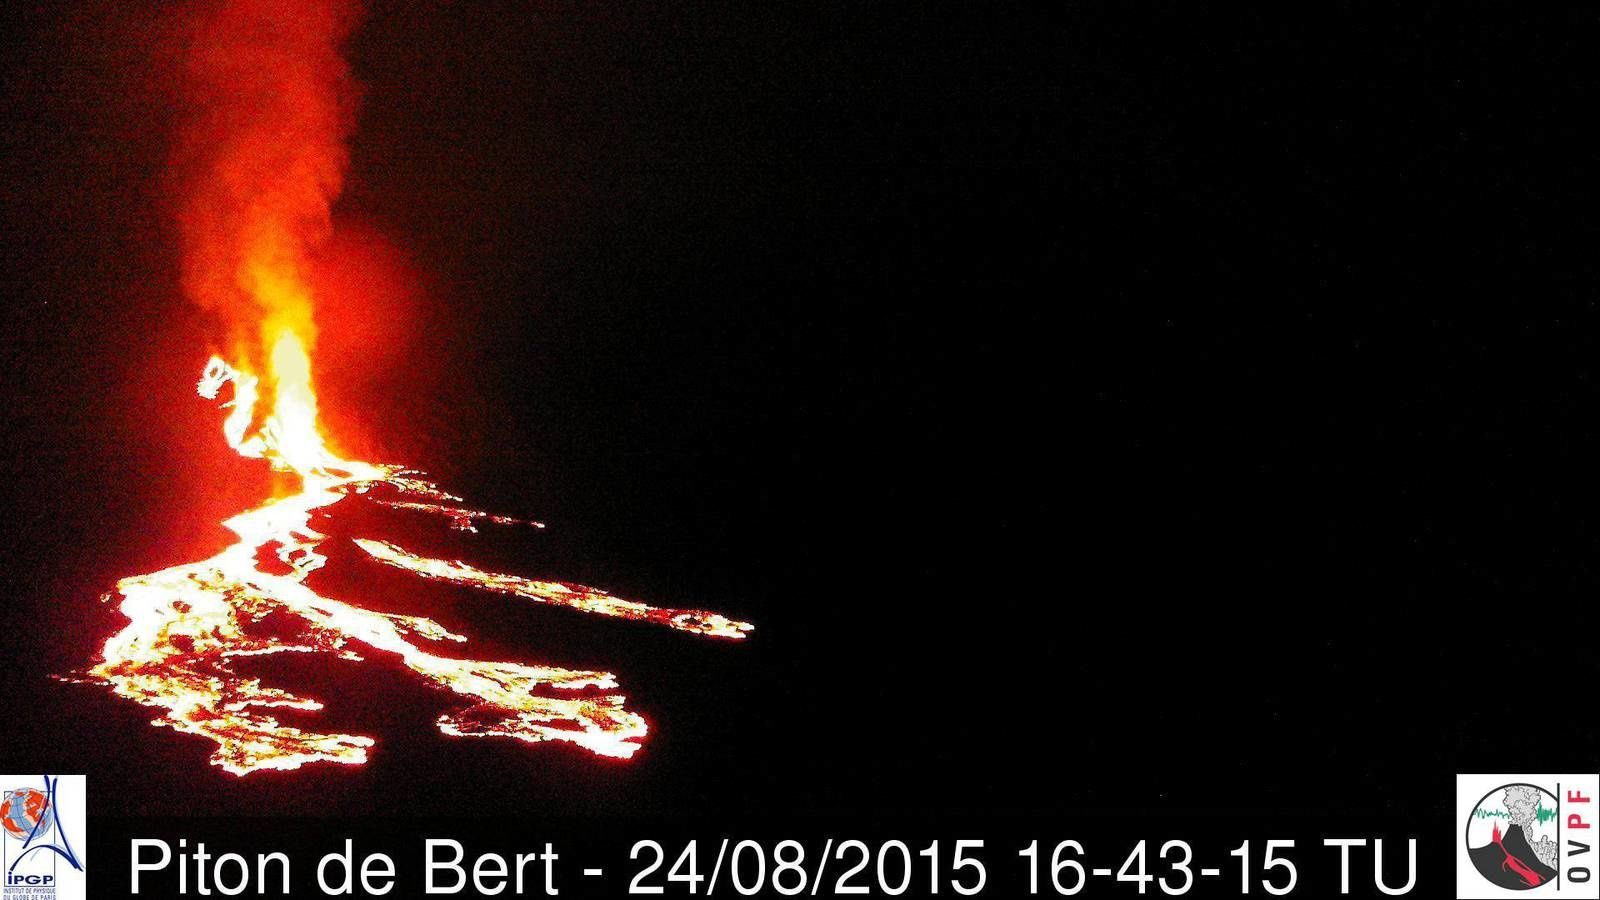 Piton de la Fournaise 08.24.2015 / 4:43 p.m. GMT / 8:43 p.m. Local - lava flow into several branches - webcam Piton Bert / OVPF